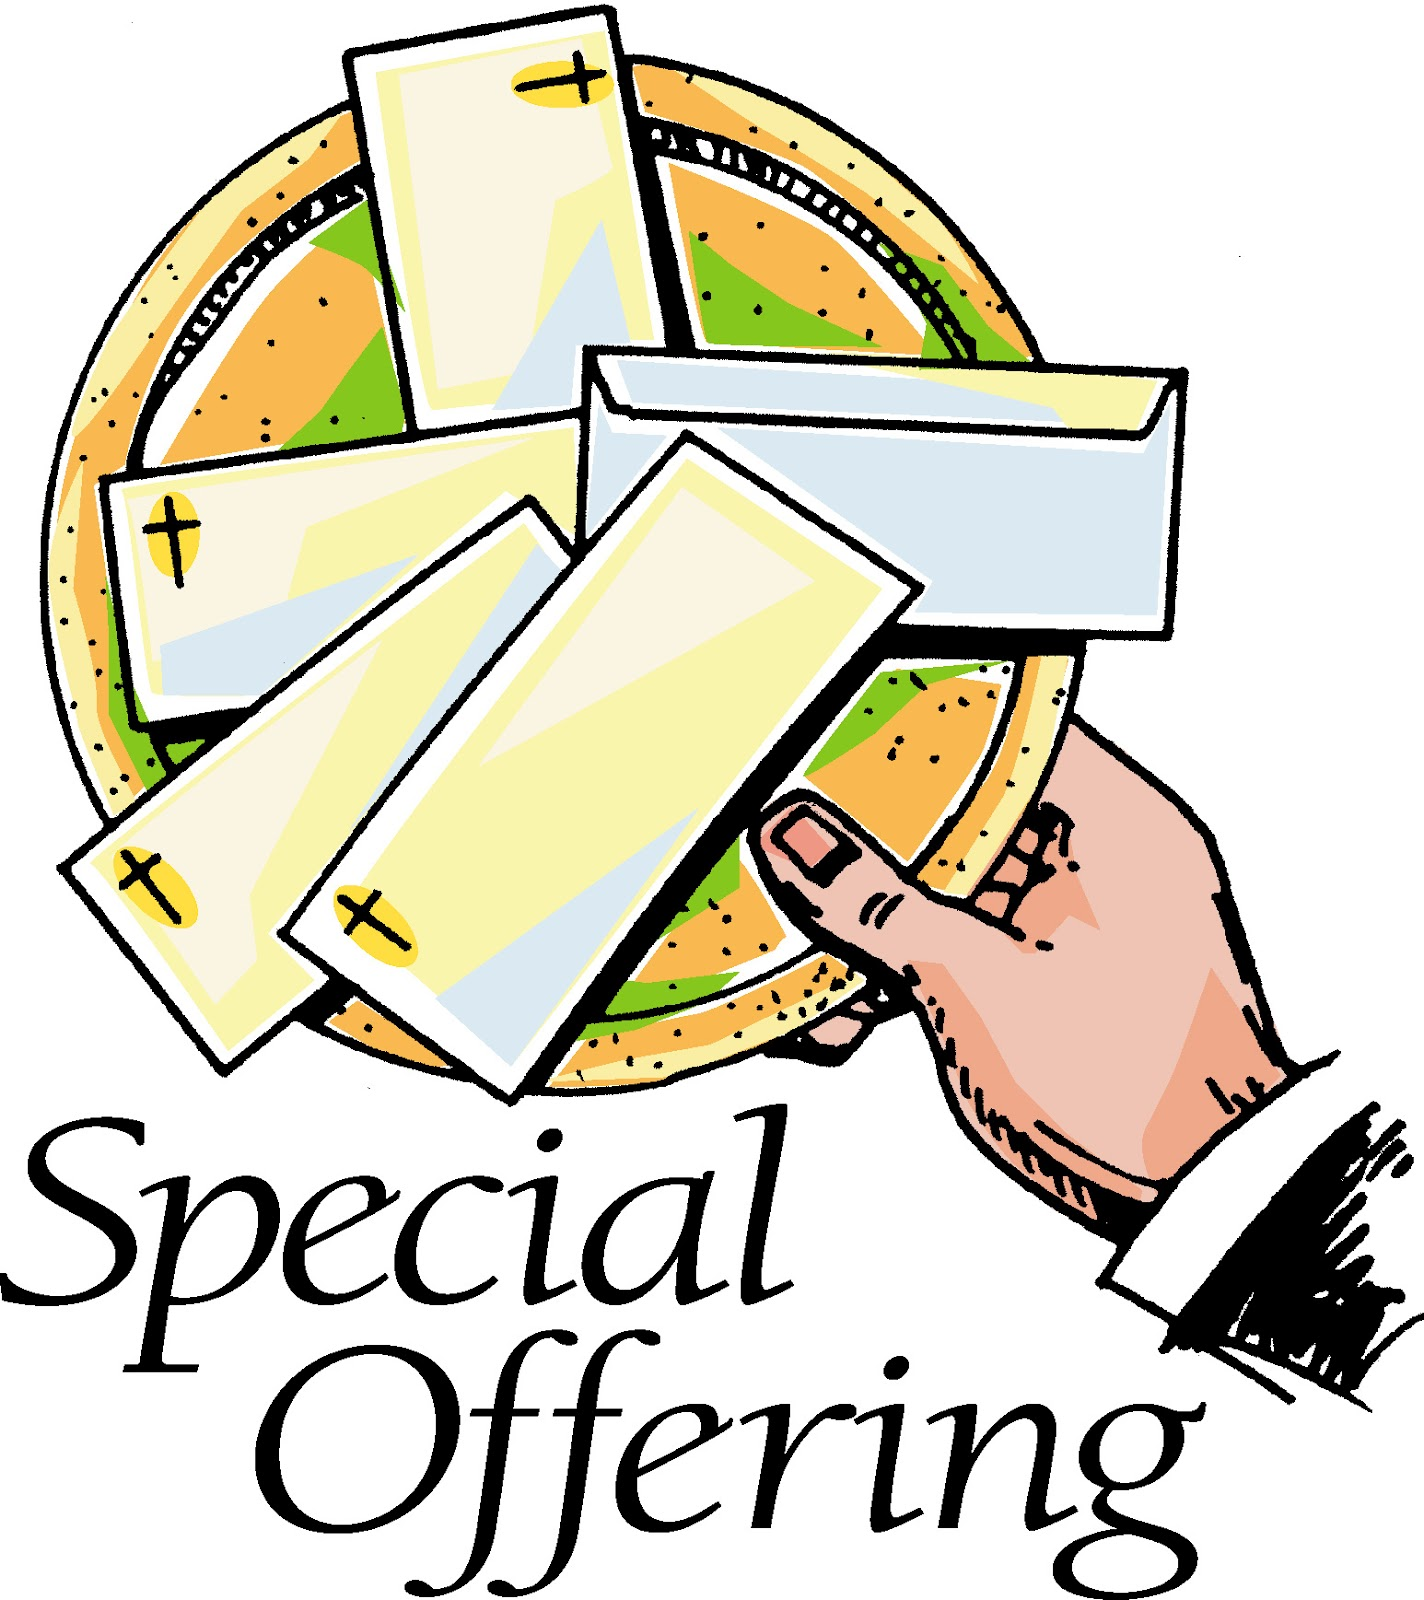 Special Offering Clipart.